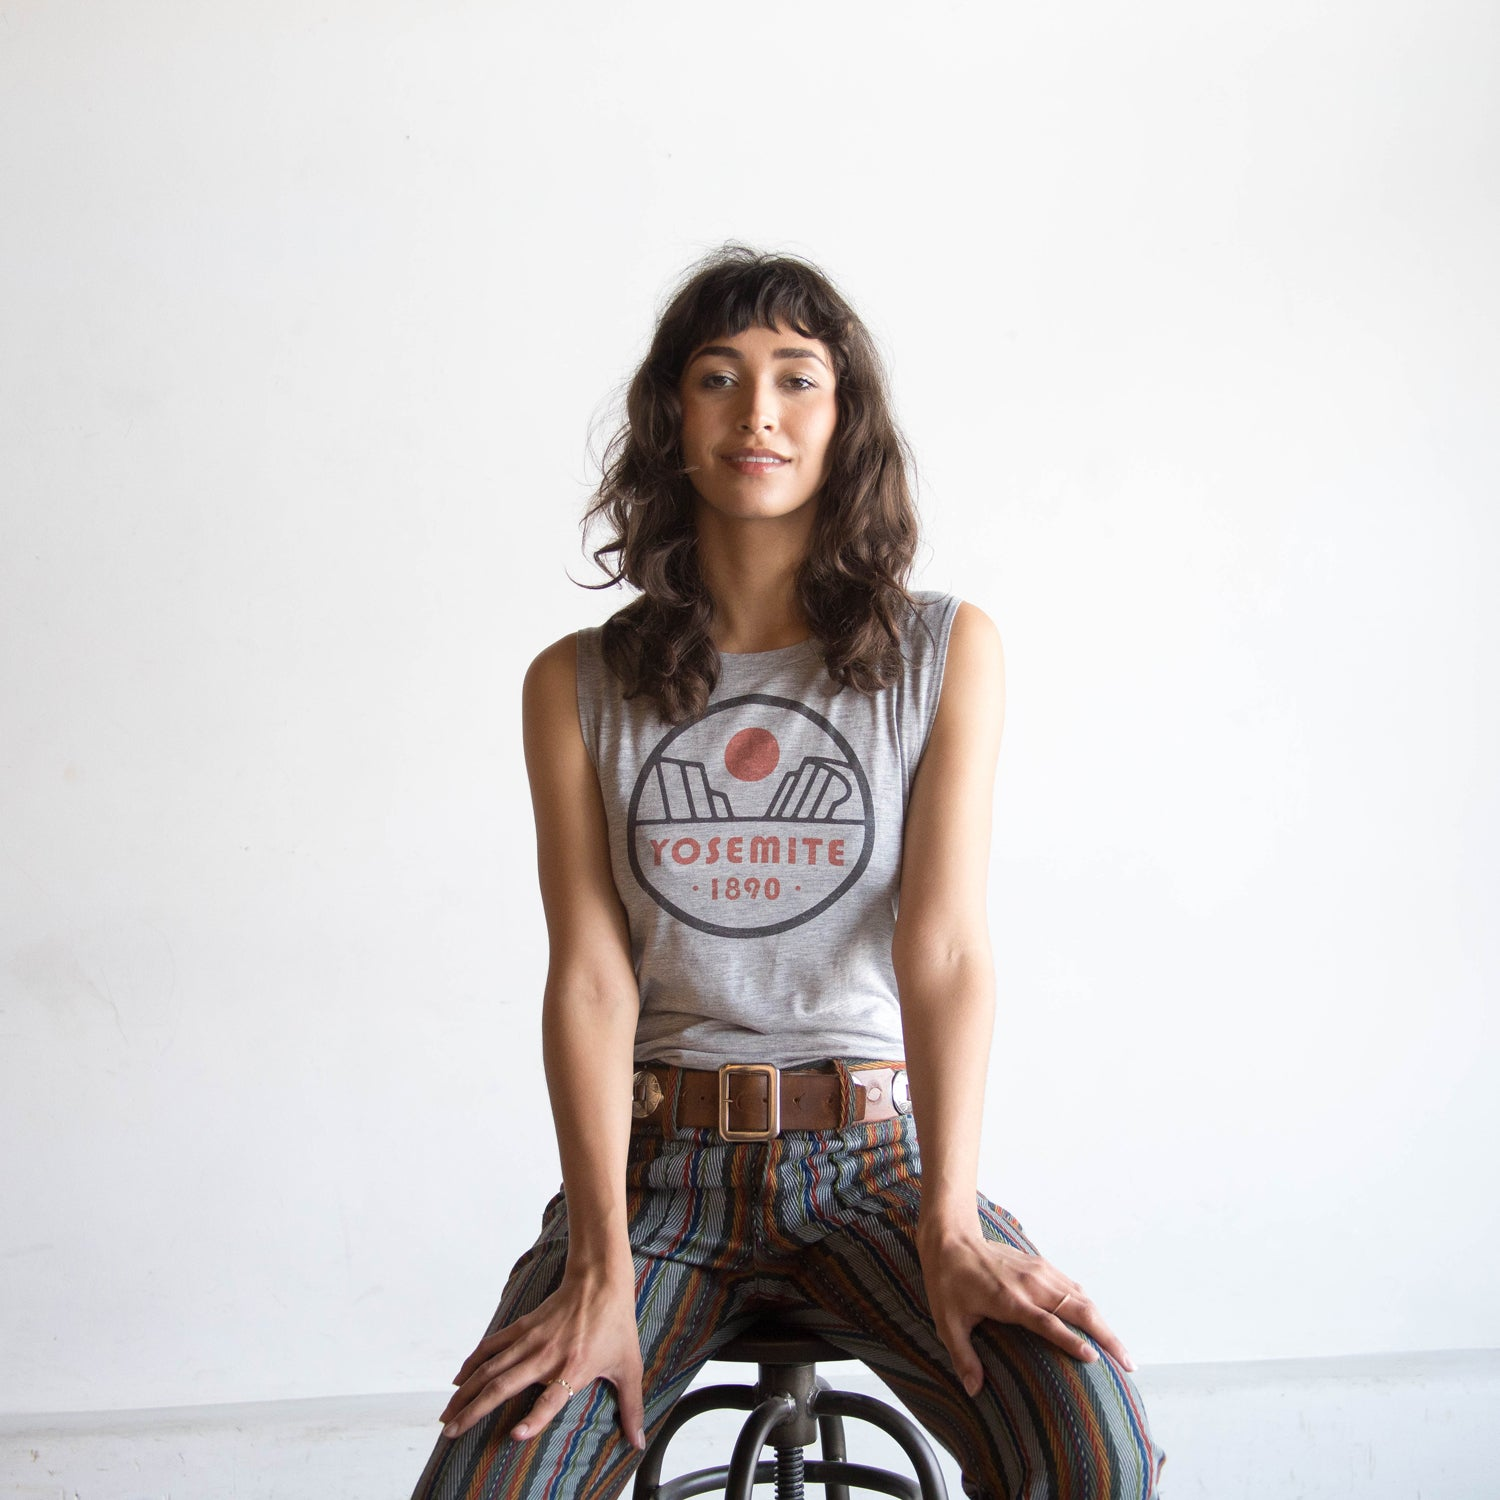 Yosemite SKR SKR Sleeveless Tank | Parks Project | National Parks Apparel